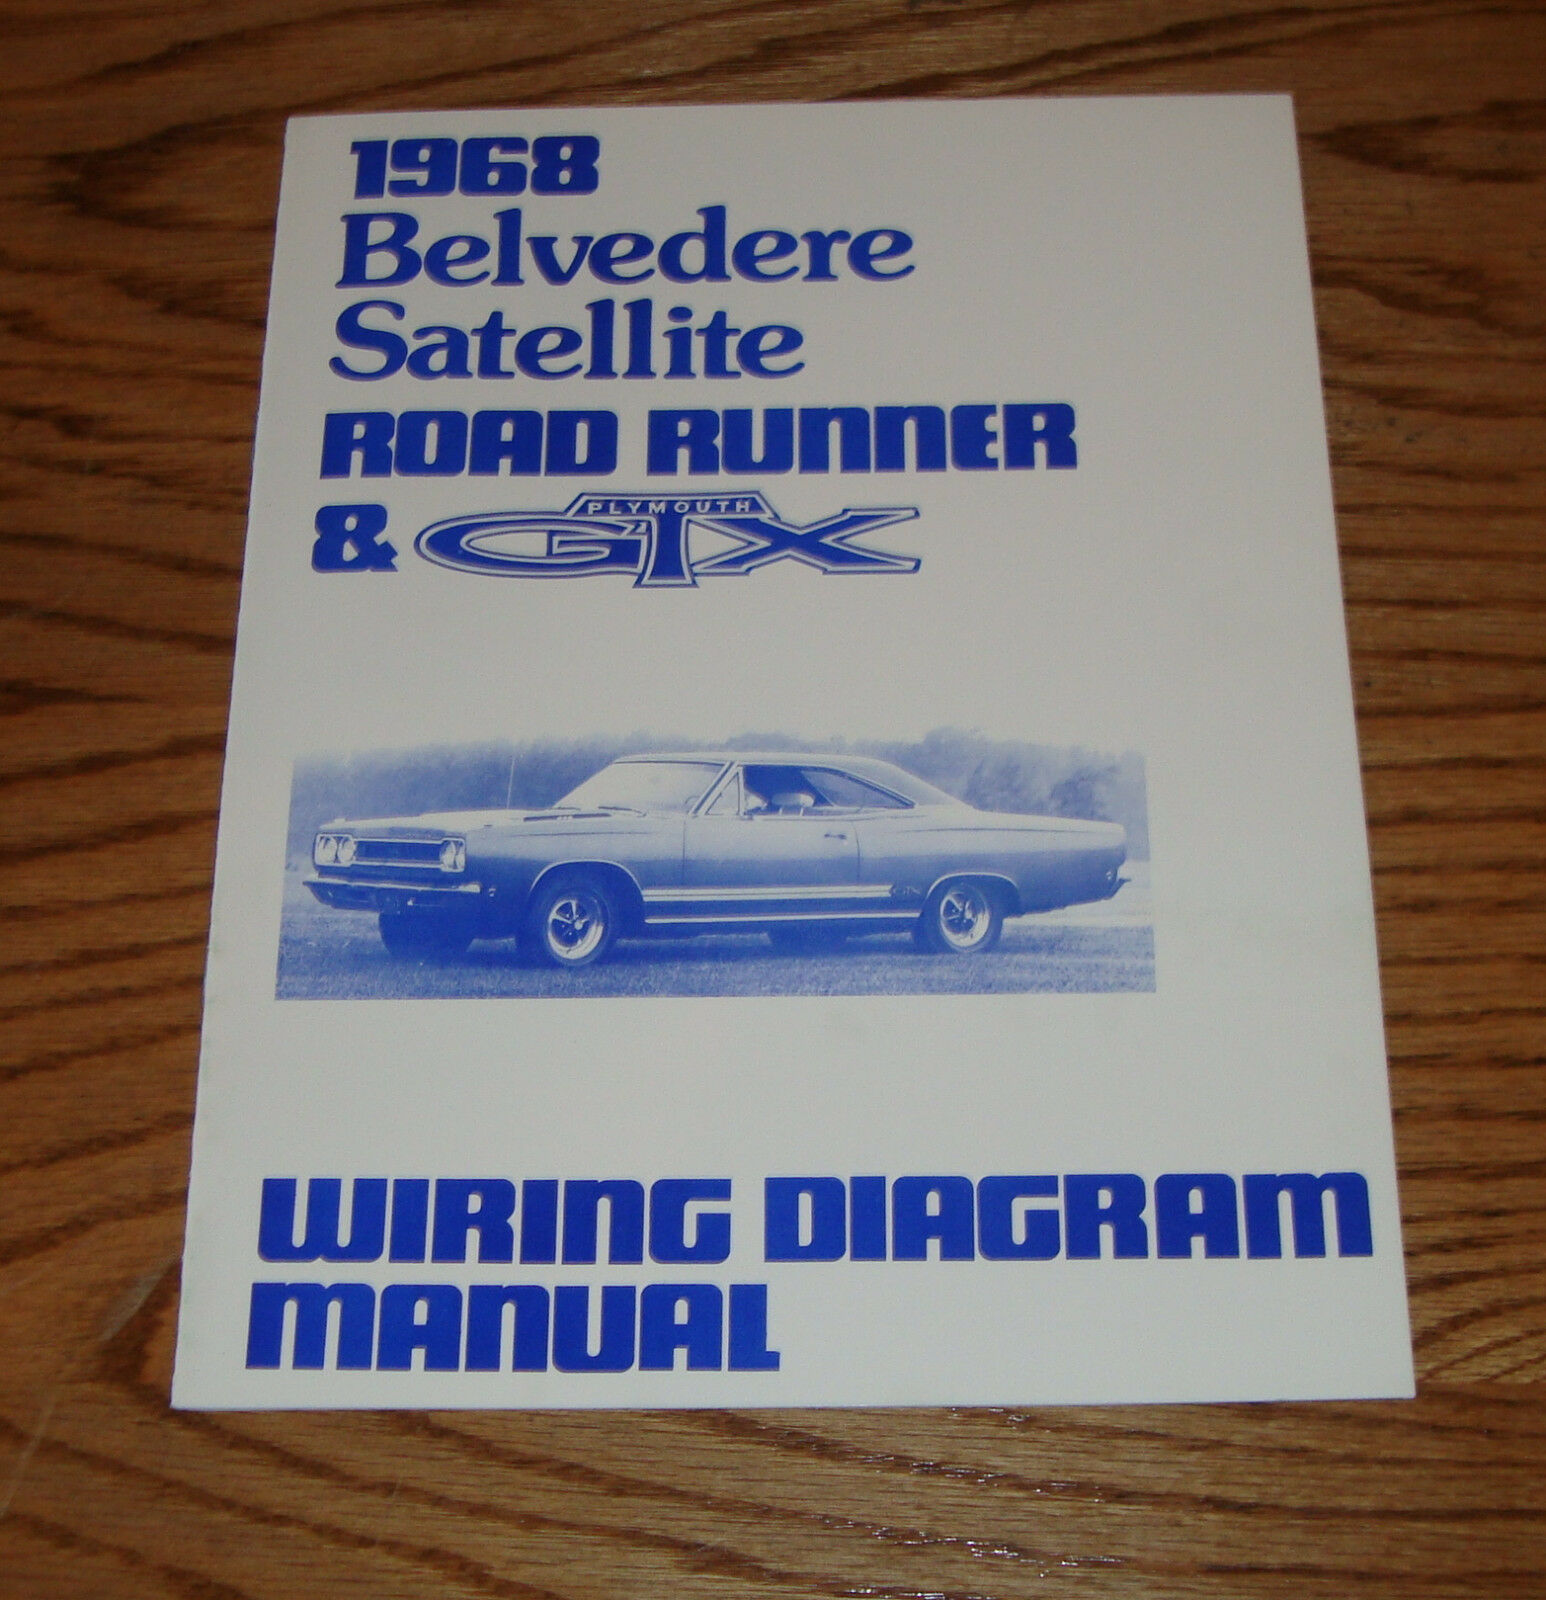 Wiring Diagram For 1968 Plymouth Satellite Trusted 68 Dodge Dart Belvedere